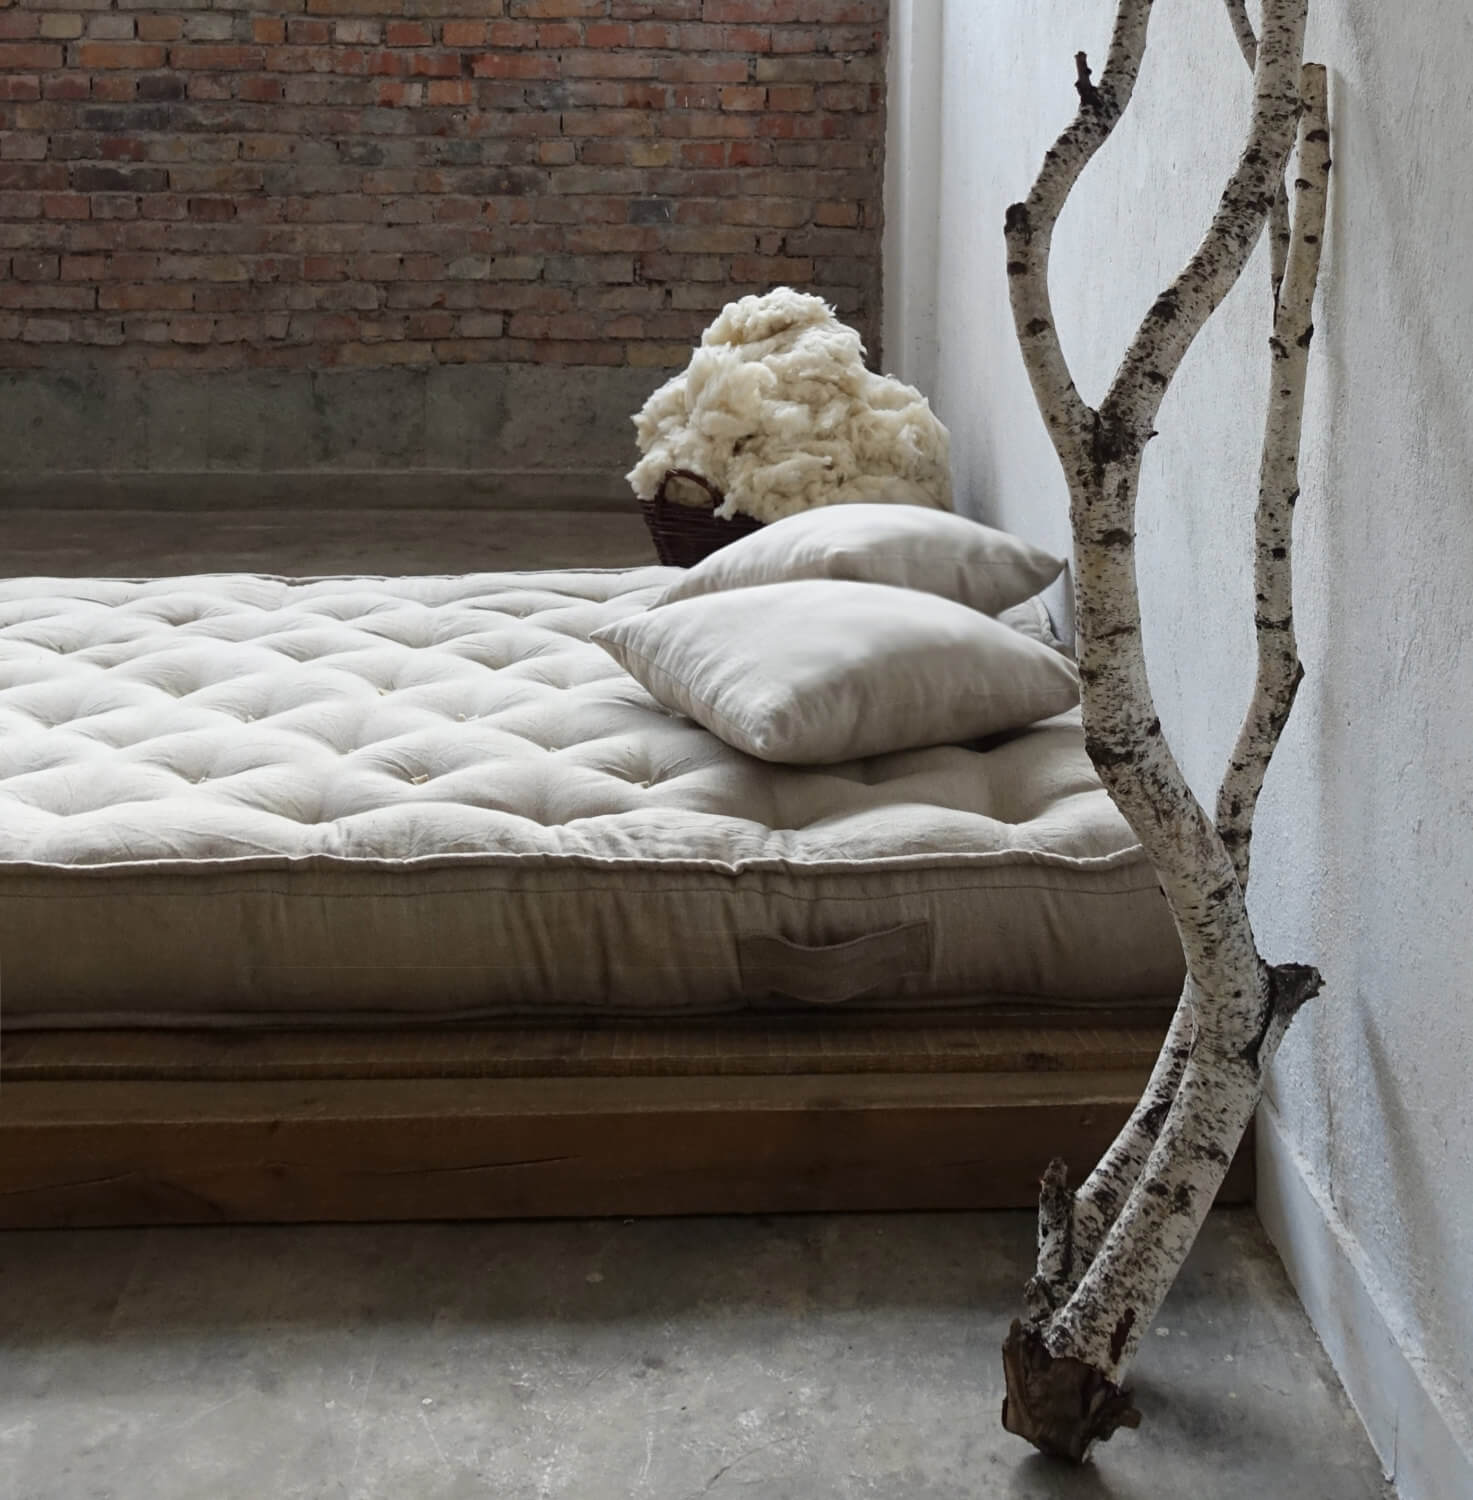 Mattress in 100% linen, with piped edges